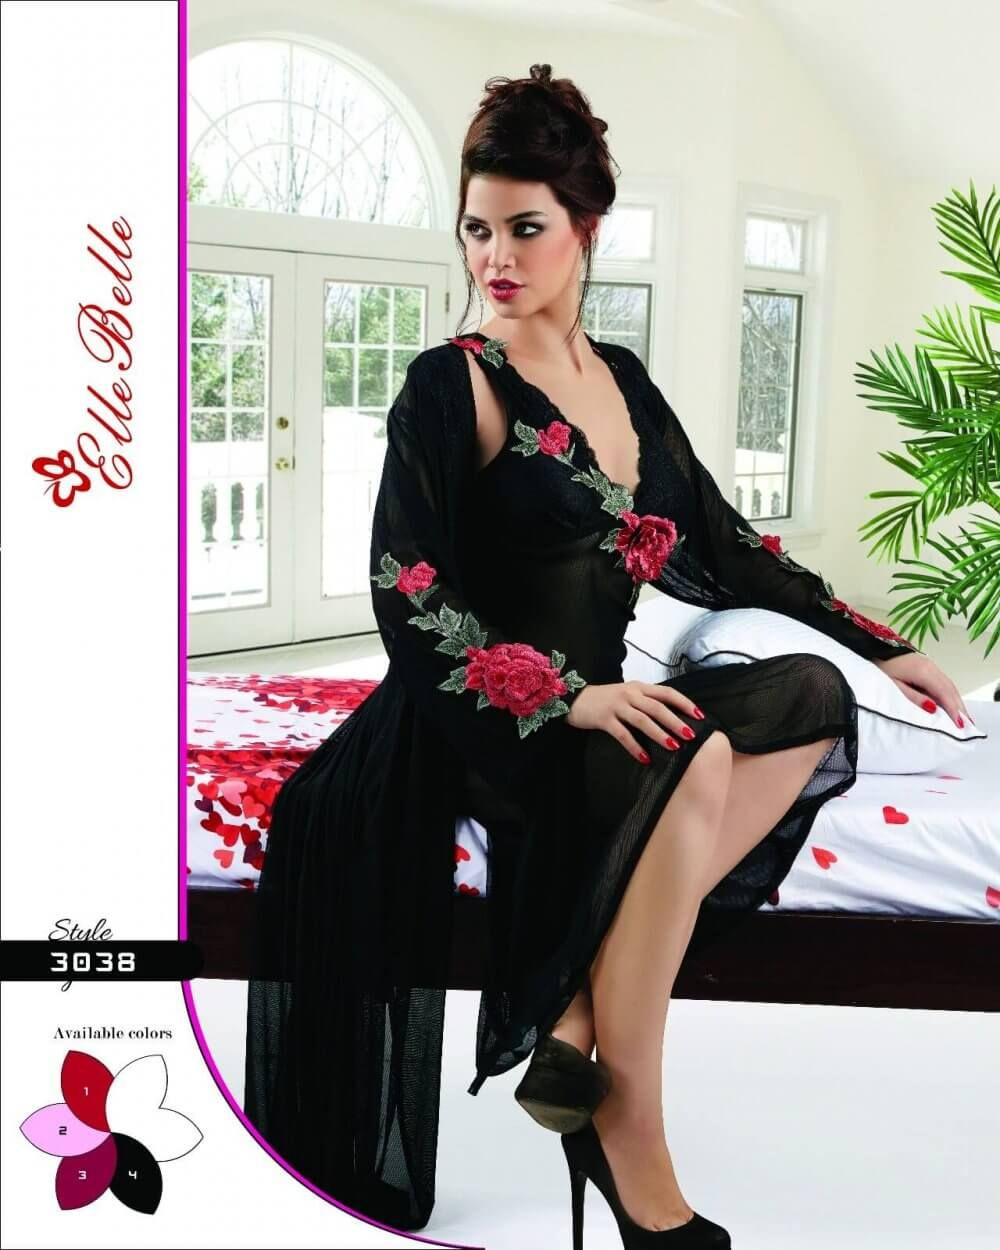 2-Piece Nighty-3038 - 2 Piece Nighty - Bridal Nighty - Nighty. Find this  Pin and more on Exclusive Nighty Collection ... a15114d01